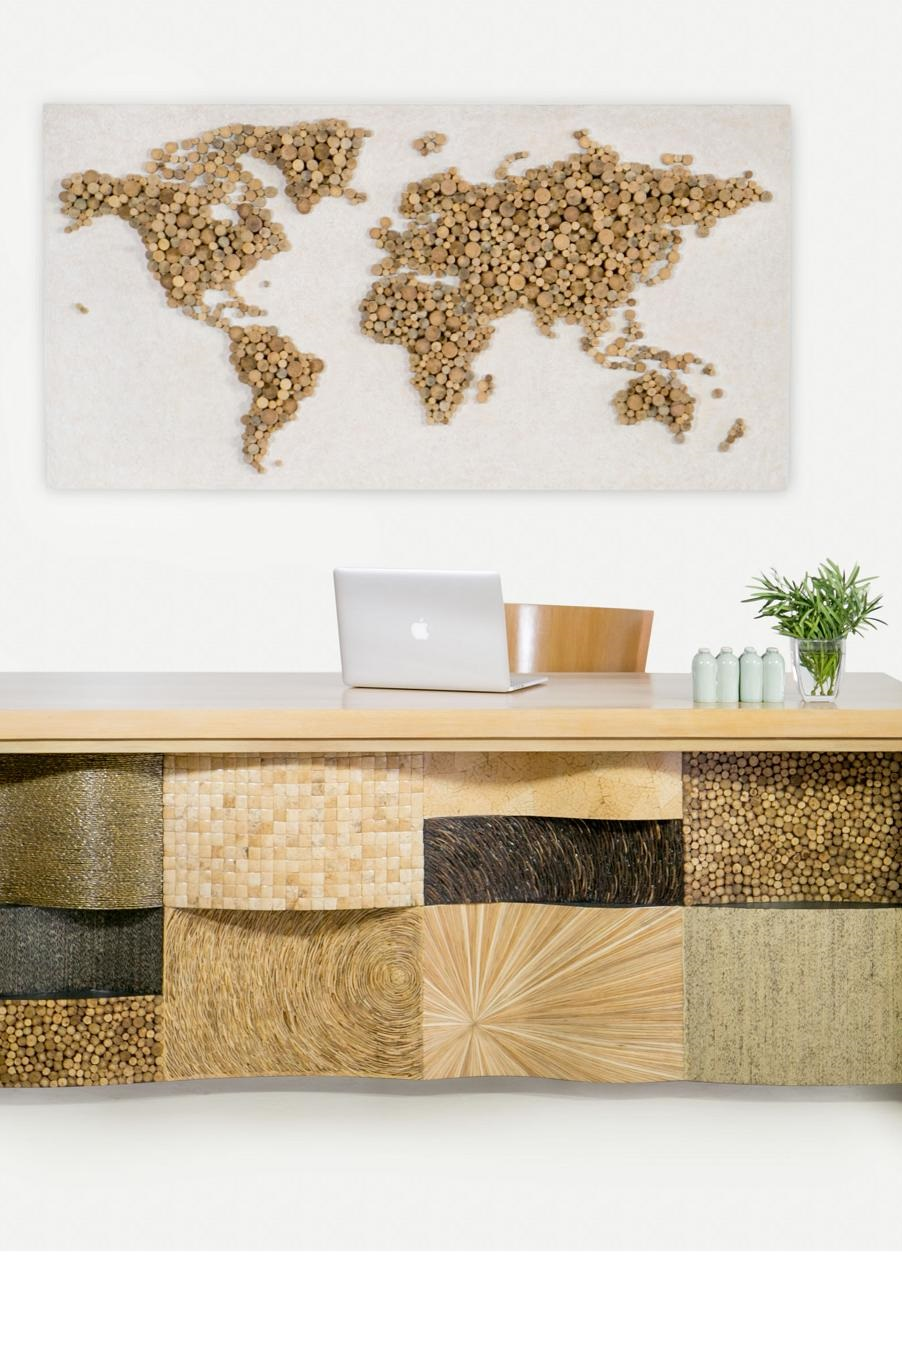 Co-Creative Studio, Detalia Aurora, World Map Wall Art, Rattan Poles, Upcycled A.jpg